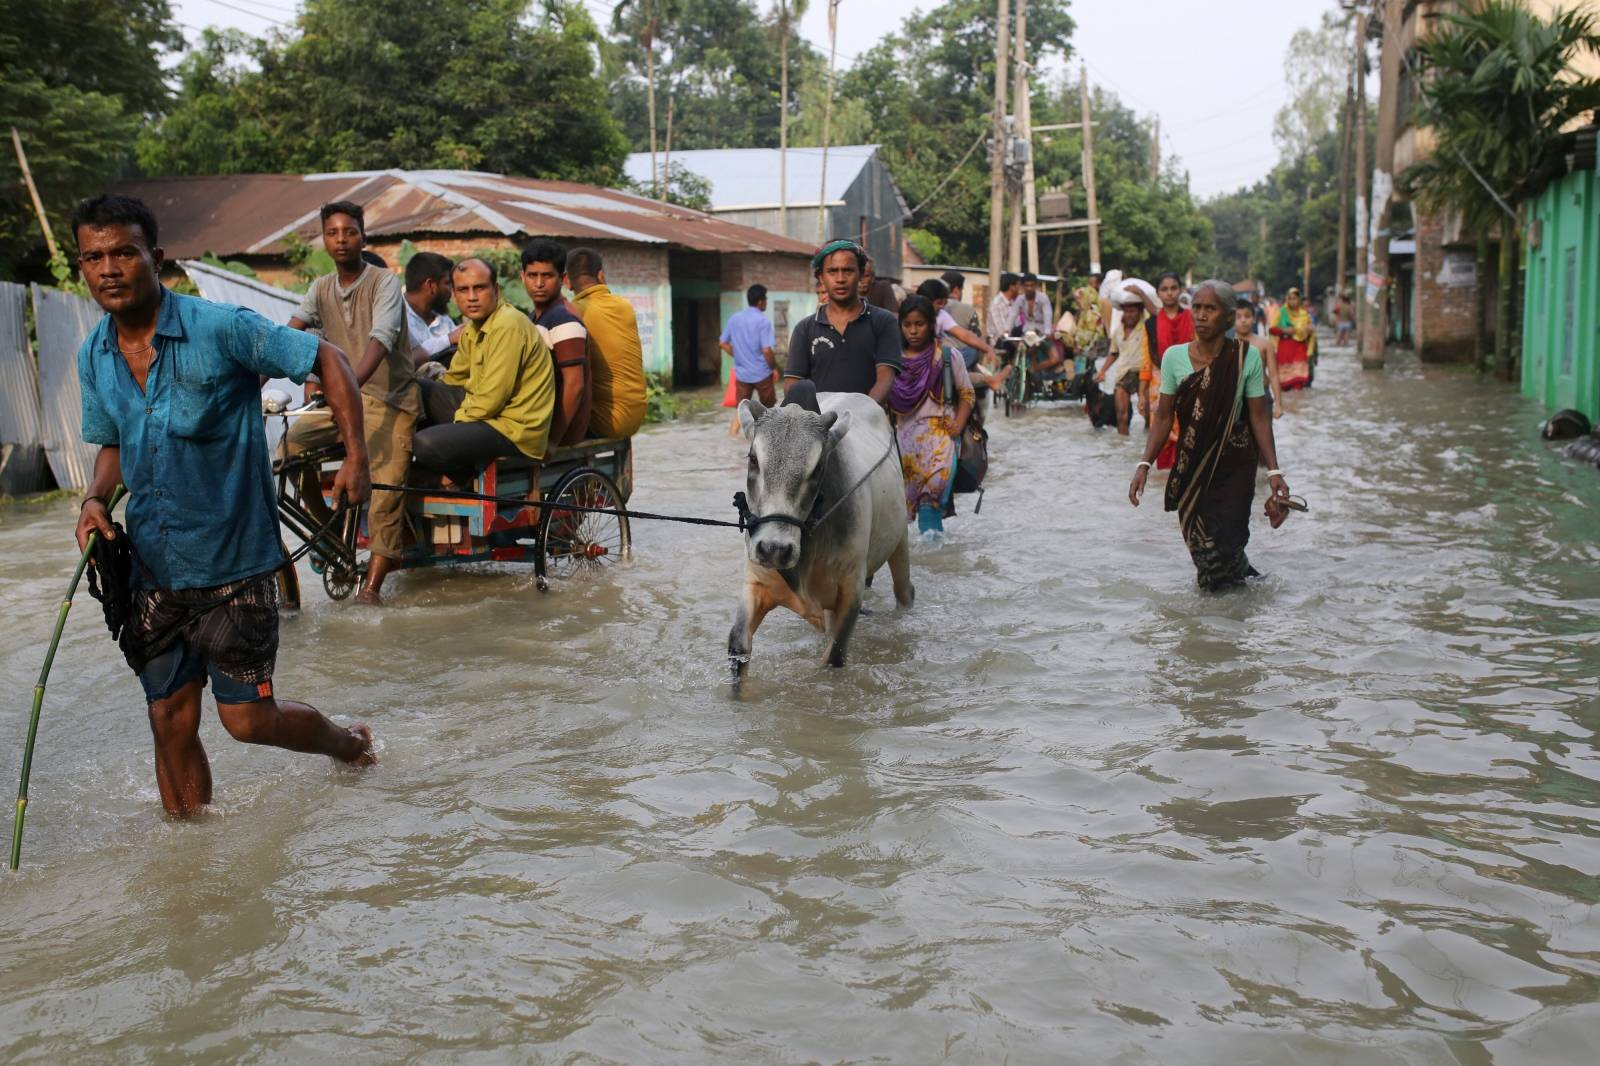 People move along a flooded road in Gaibandha